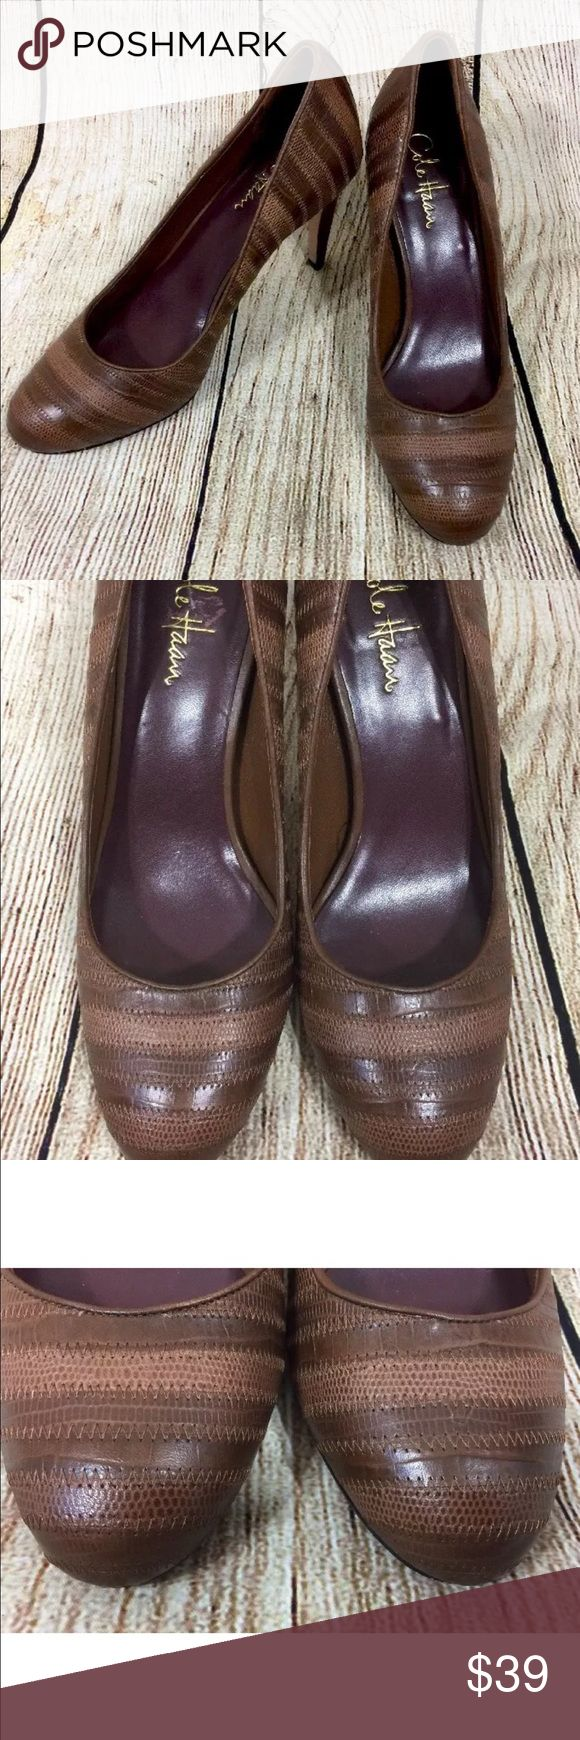 Cole Haan Nike Air Brown Size 8 1/2 B Cole Haan Nike Air Brown Striped Womans Shoes Heels Pumps Size 8 1/2 B Cole Haan Shoes Heels